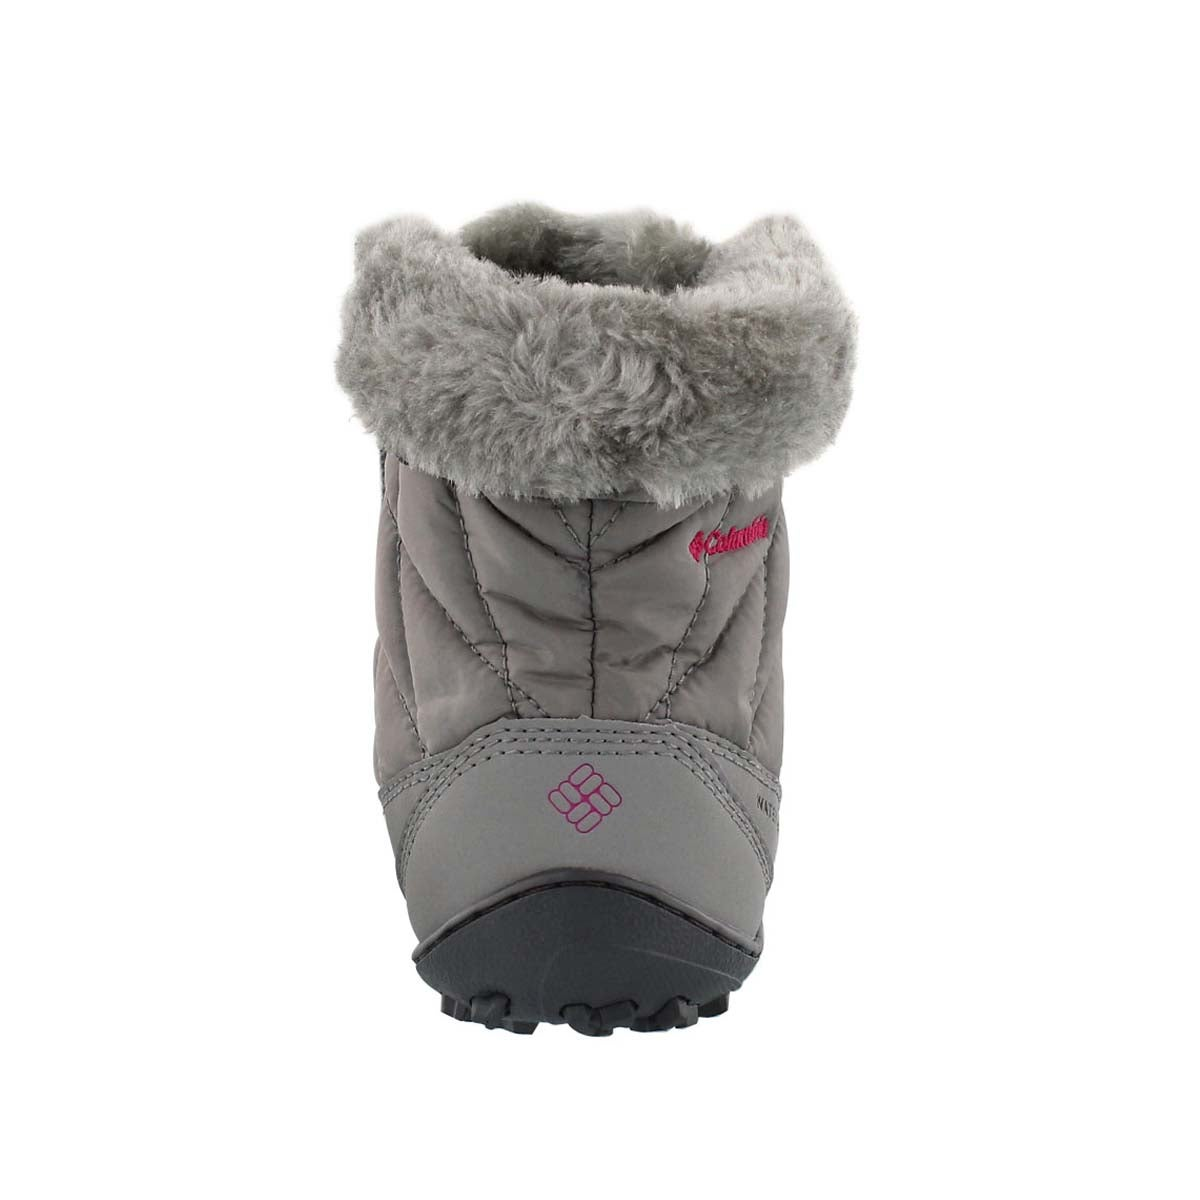 Grls Minx Shorty grey winter boot